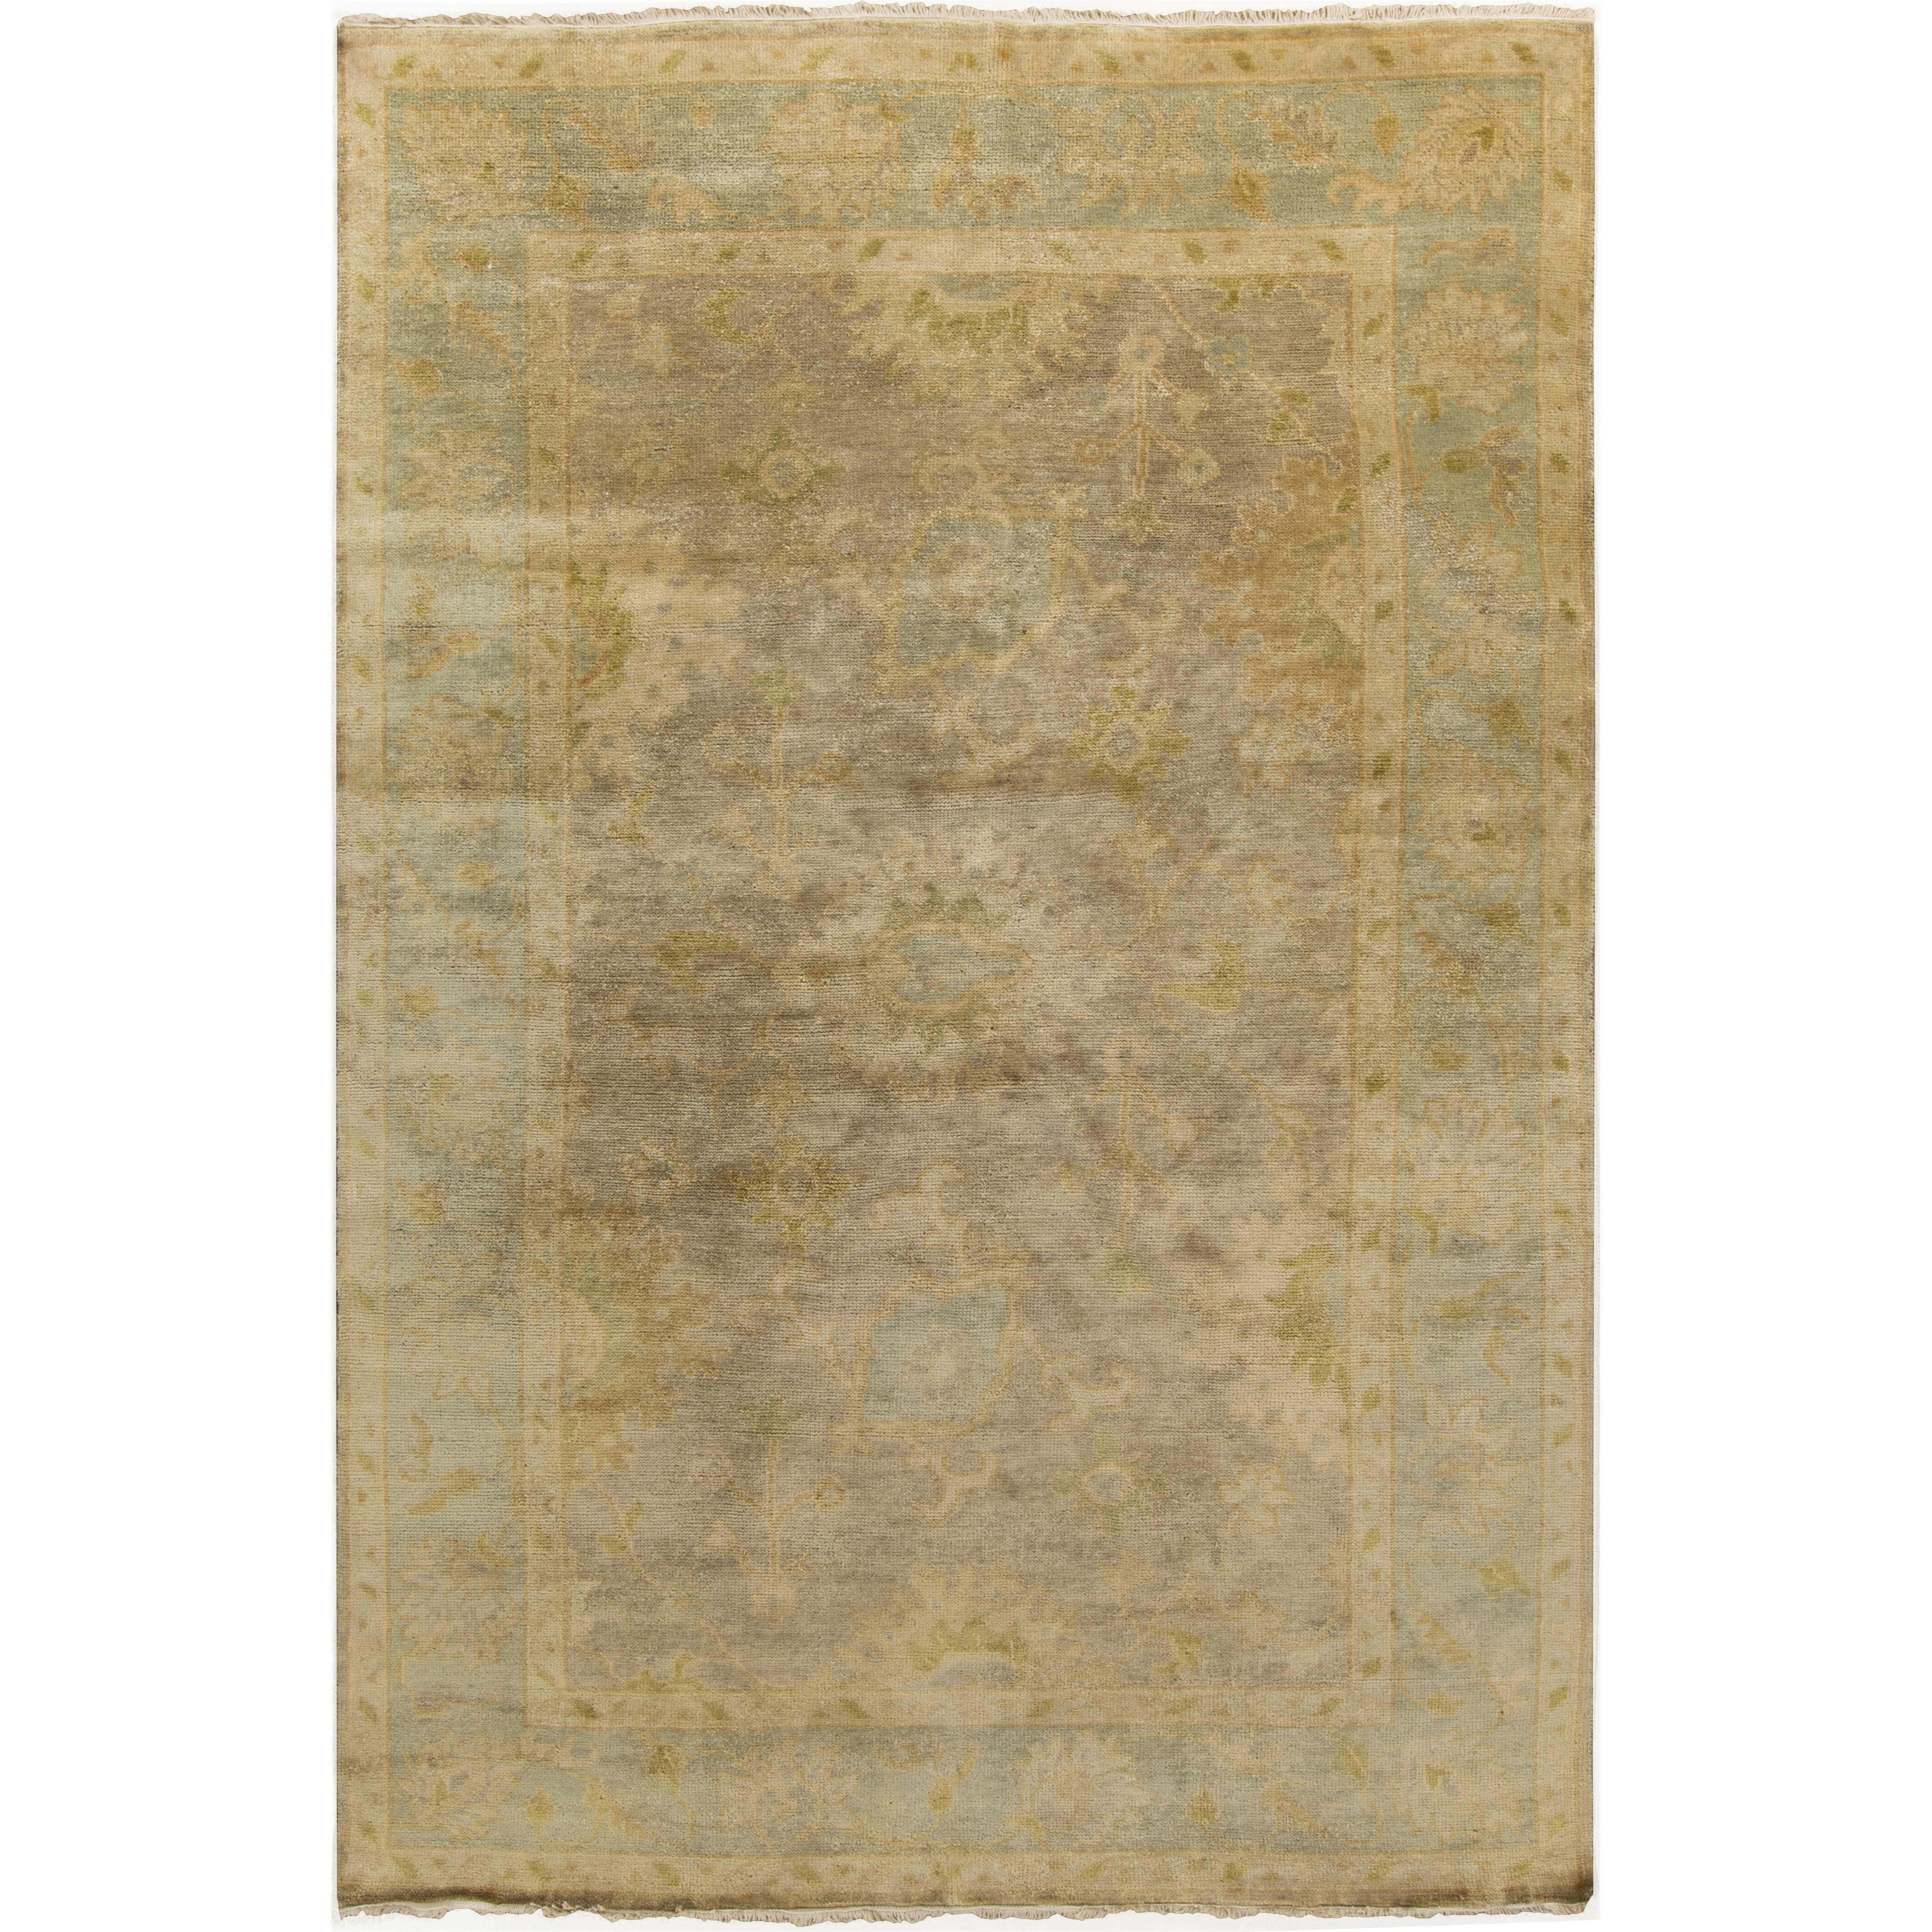 "Surya Rugs Hillcrest 5'6"" x 8'6"" - Item Number: HIL9015-5686"